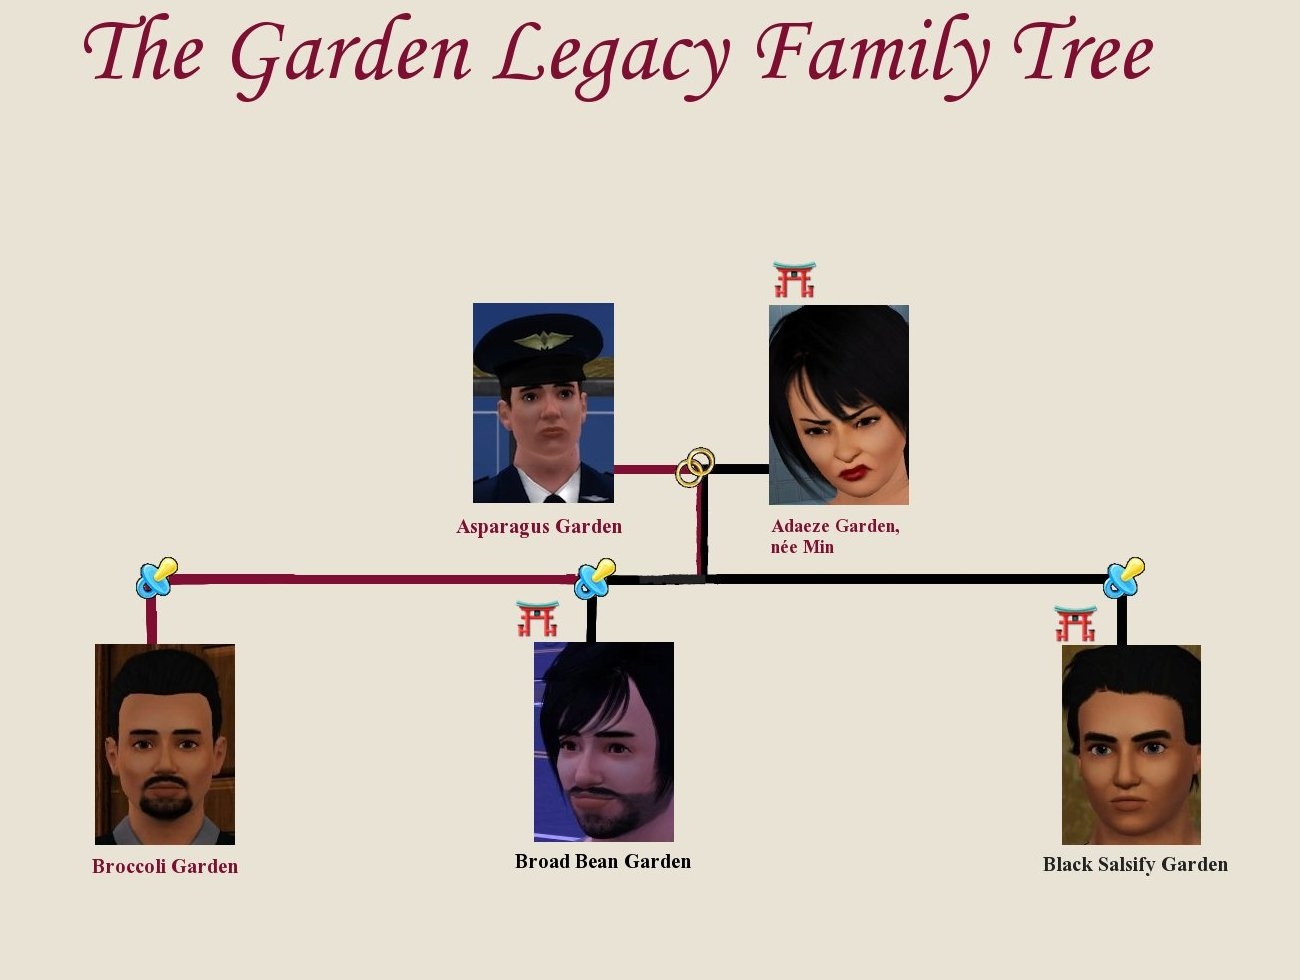 The Garden Legacy Family Tree